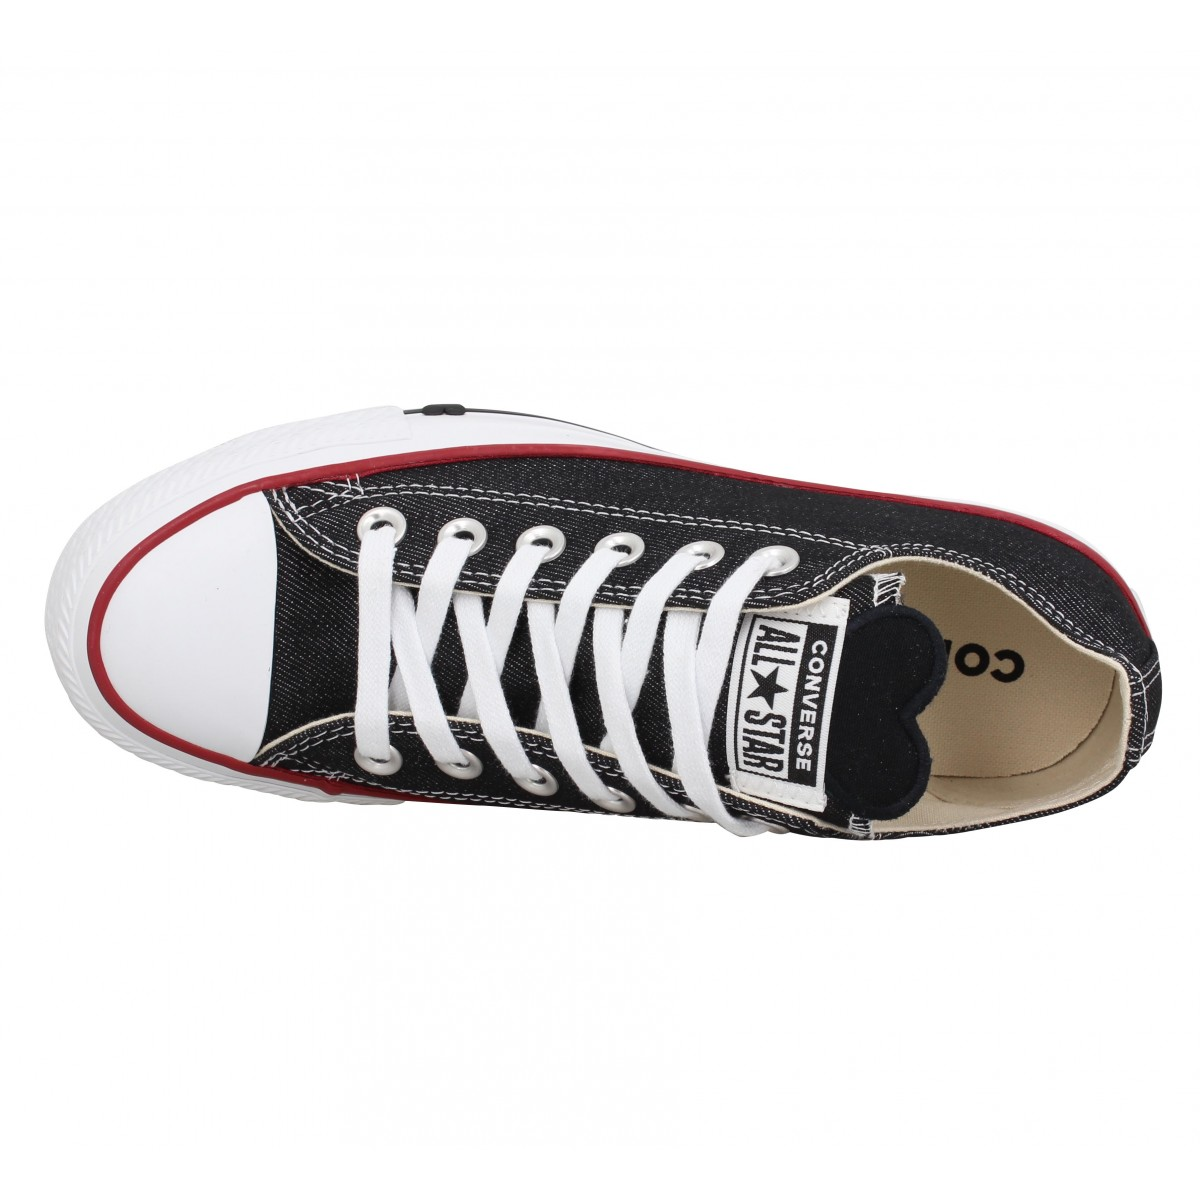 Converse chuck taylor all star toile femme jeans femme